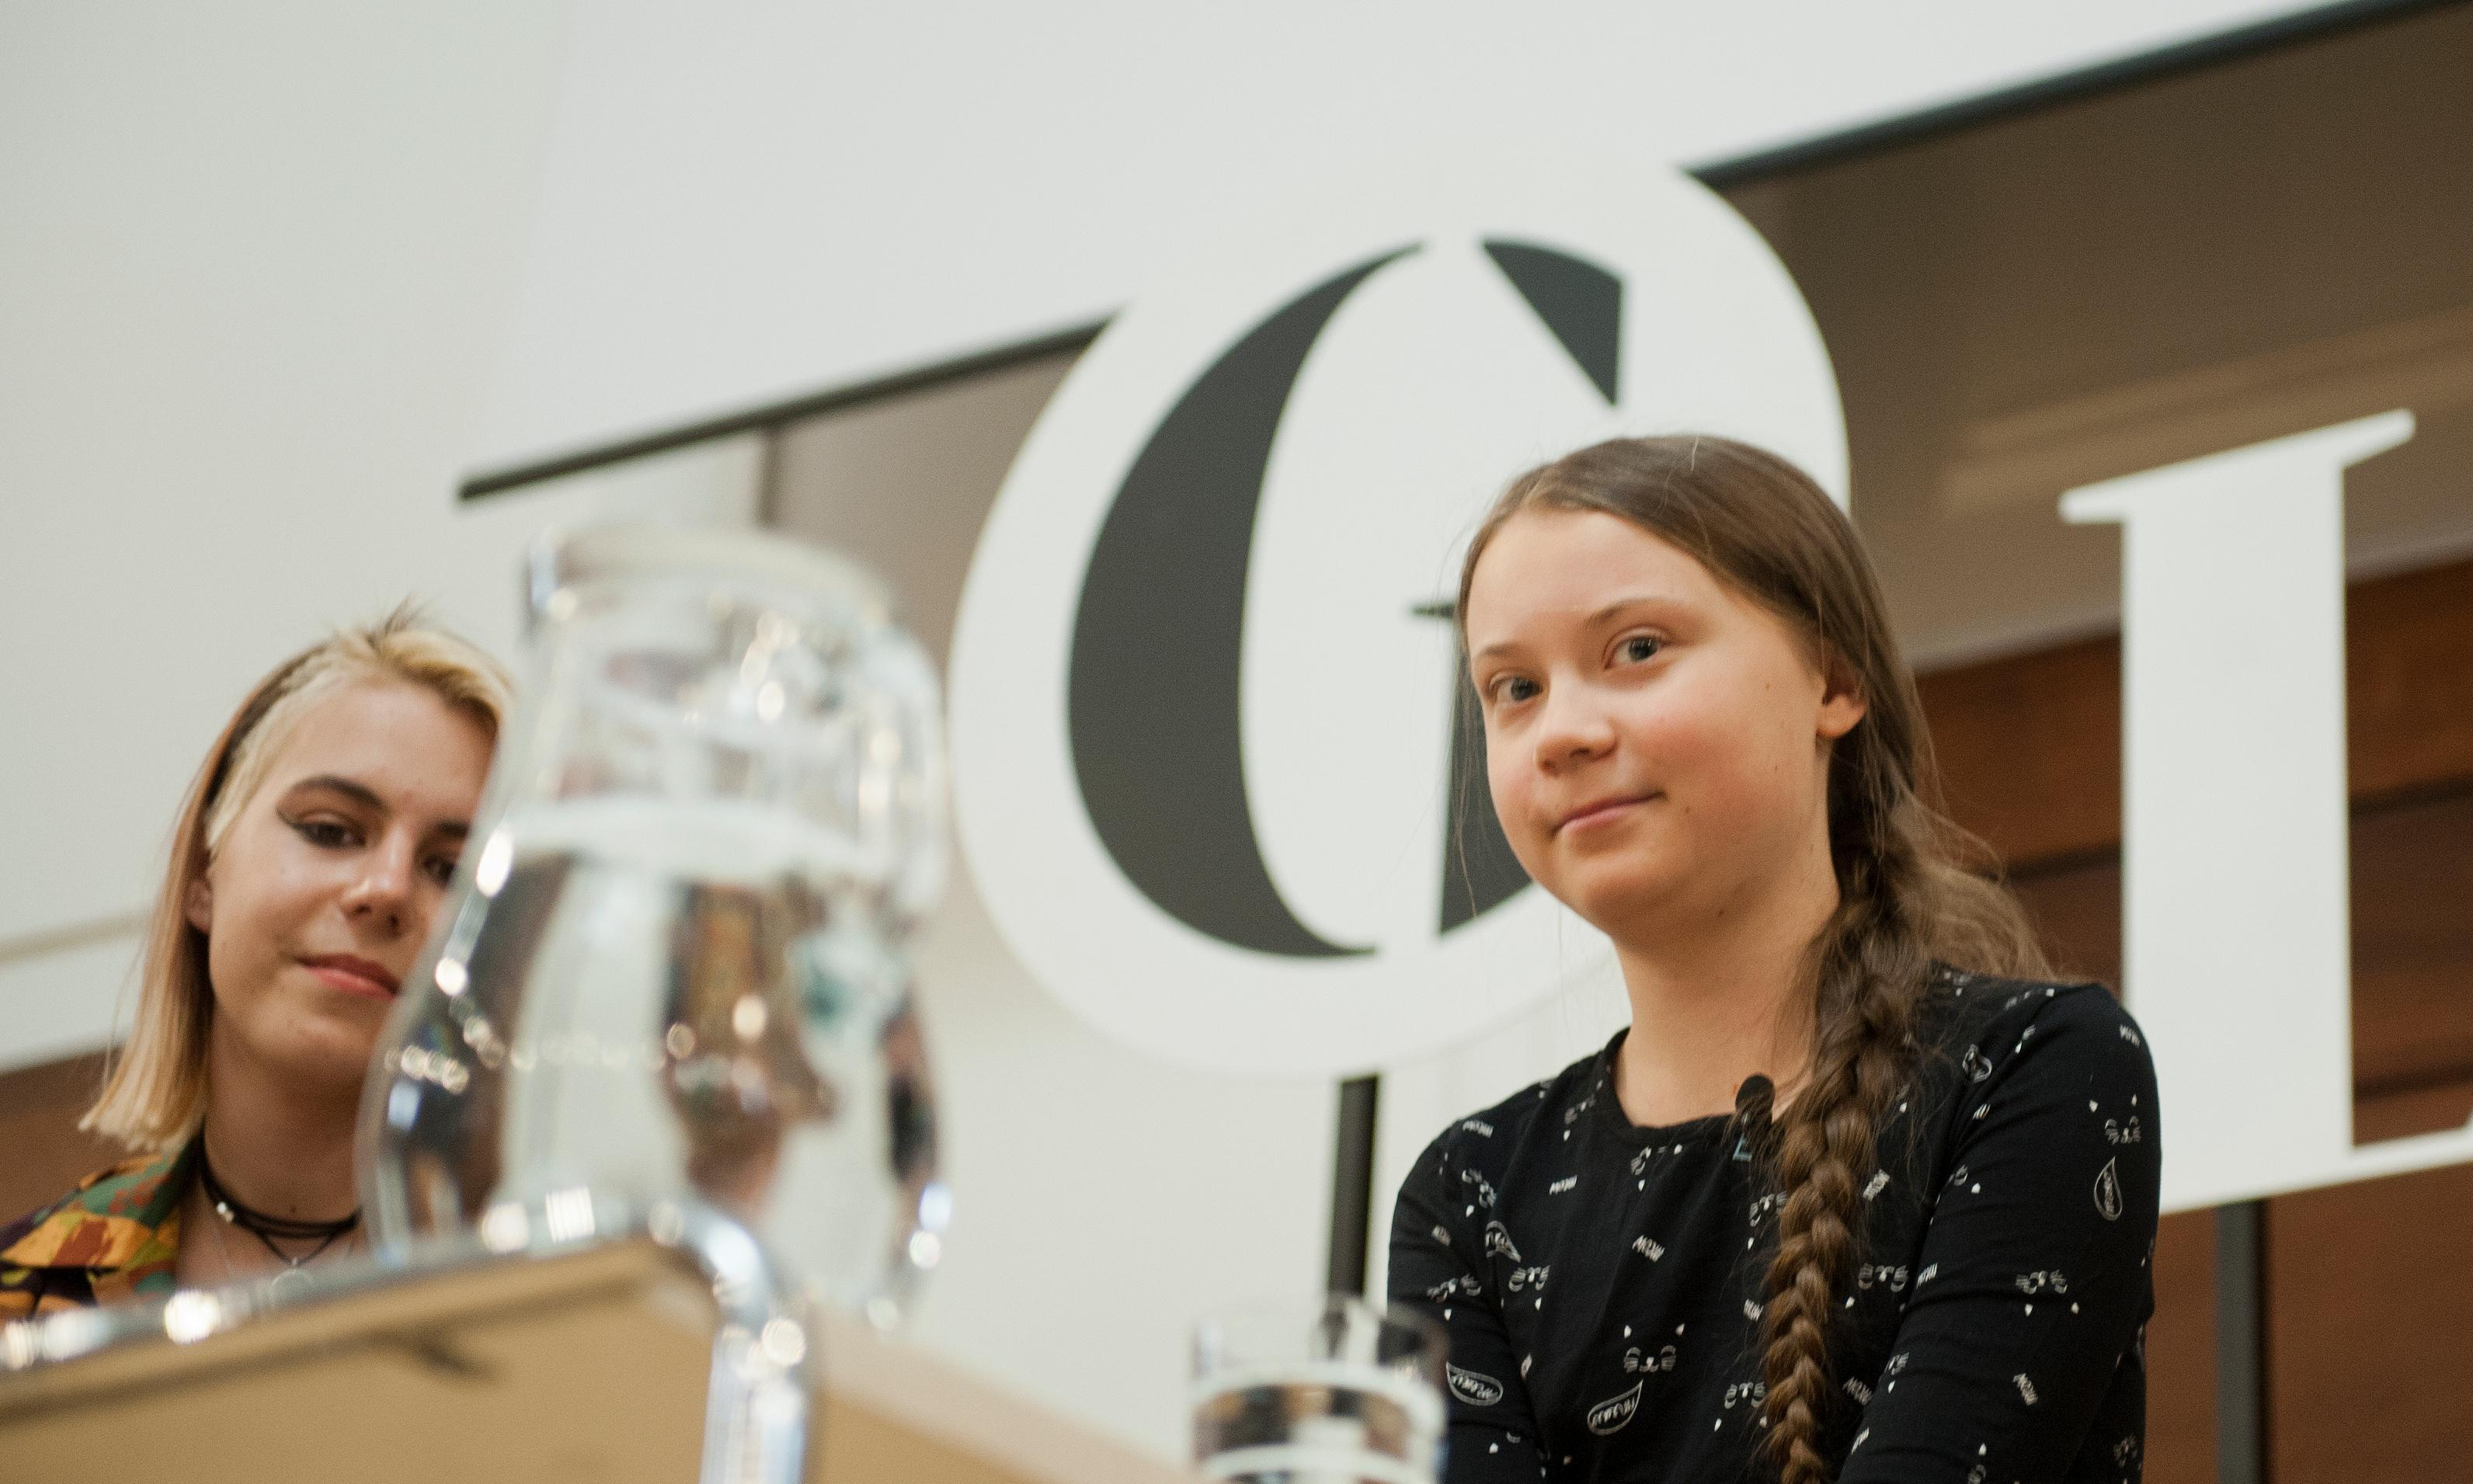 Greta Thunberg backs climate general strike to force leaders to act